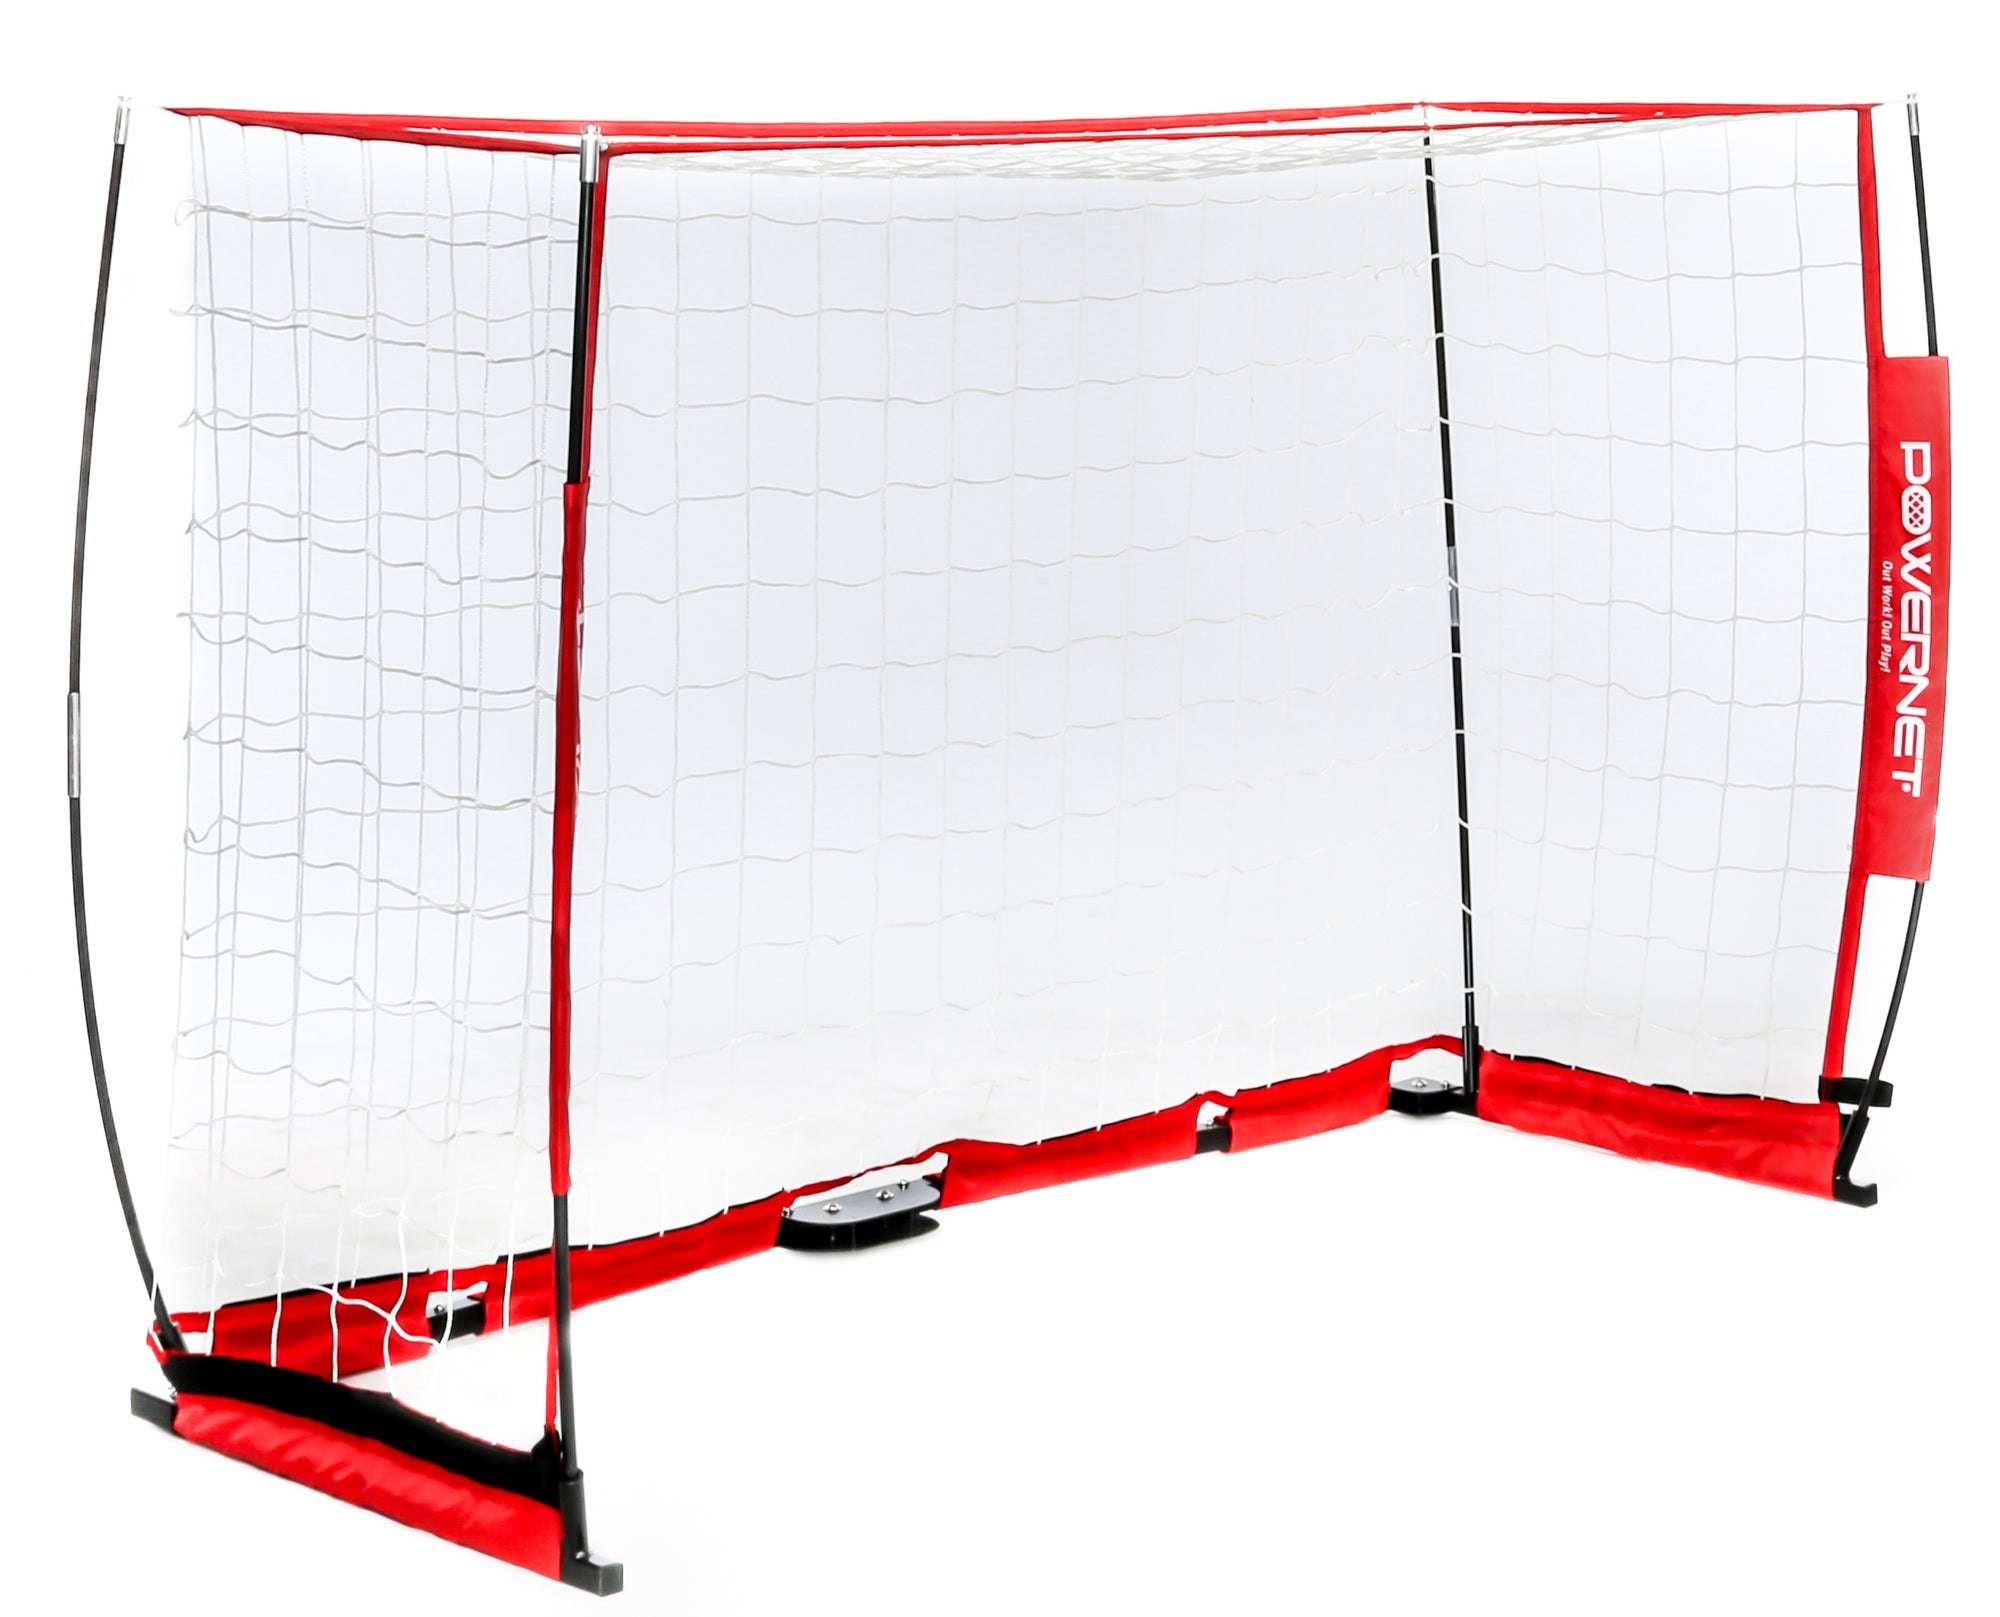 PowerNet 6 x 4 Portable Soccer Football Goal with Net | Base 2 Base Sports